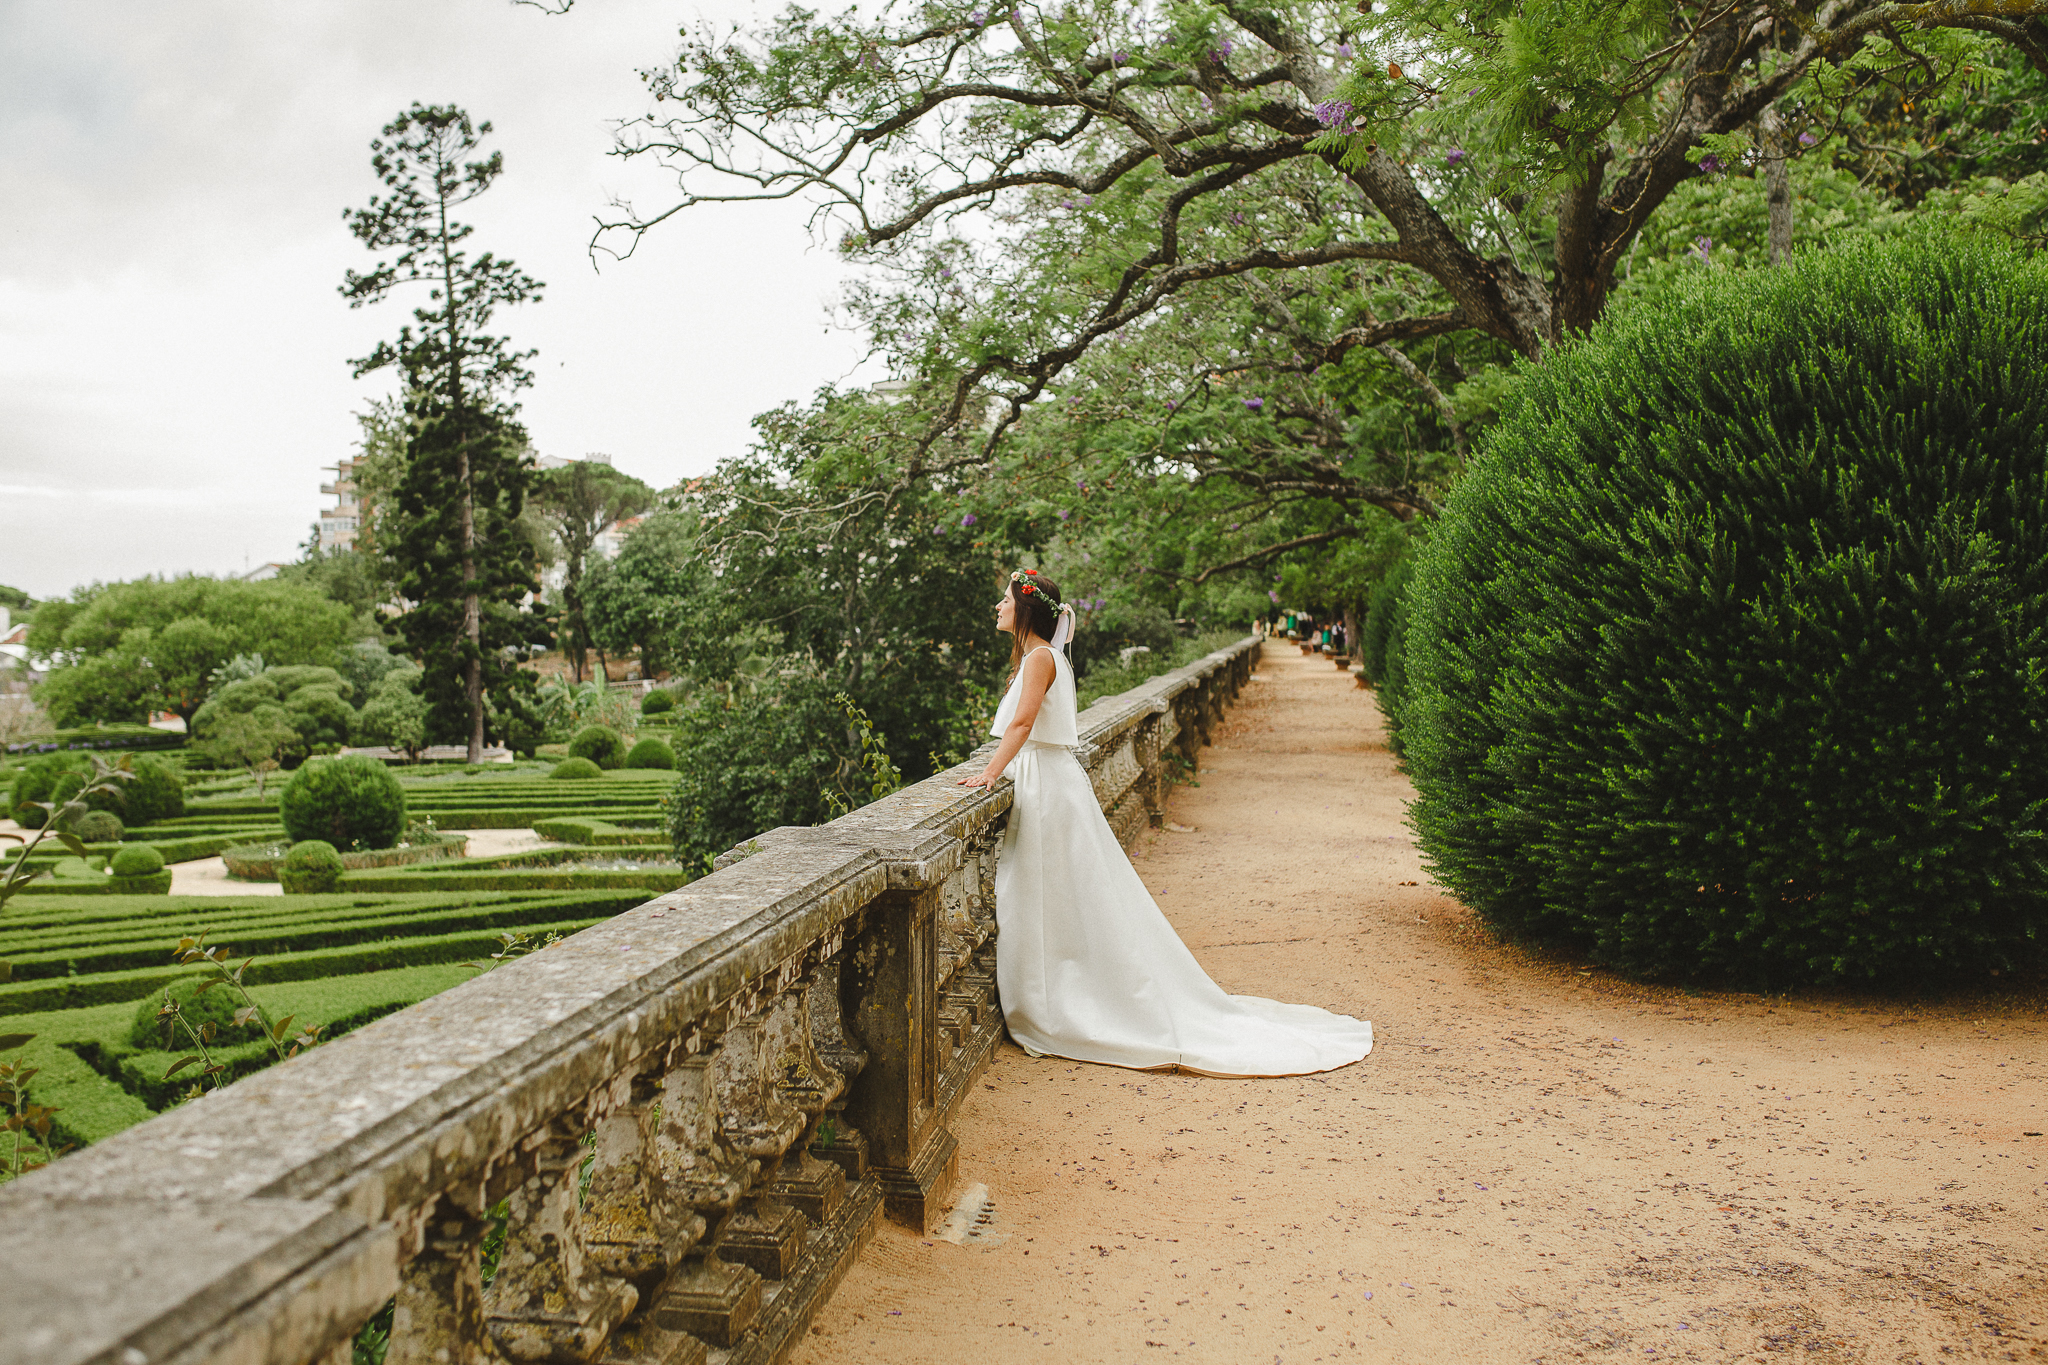 Destination Wedding Portugal, Destination Wedding Photographer, Casamento Estufa Real por Hello Twiggs